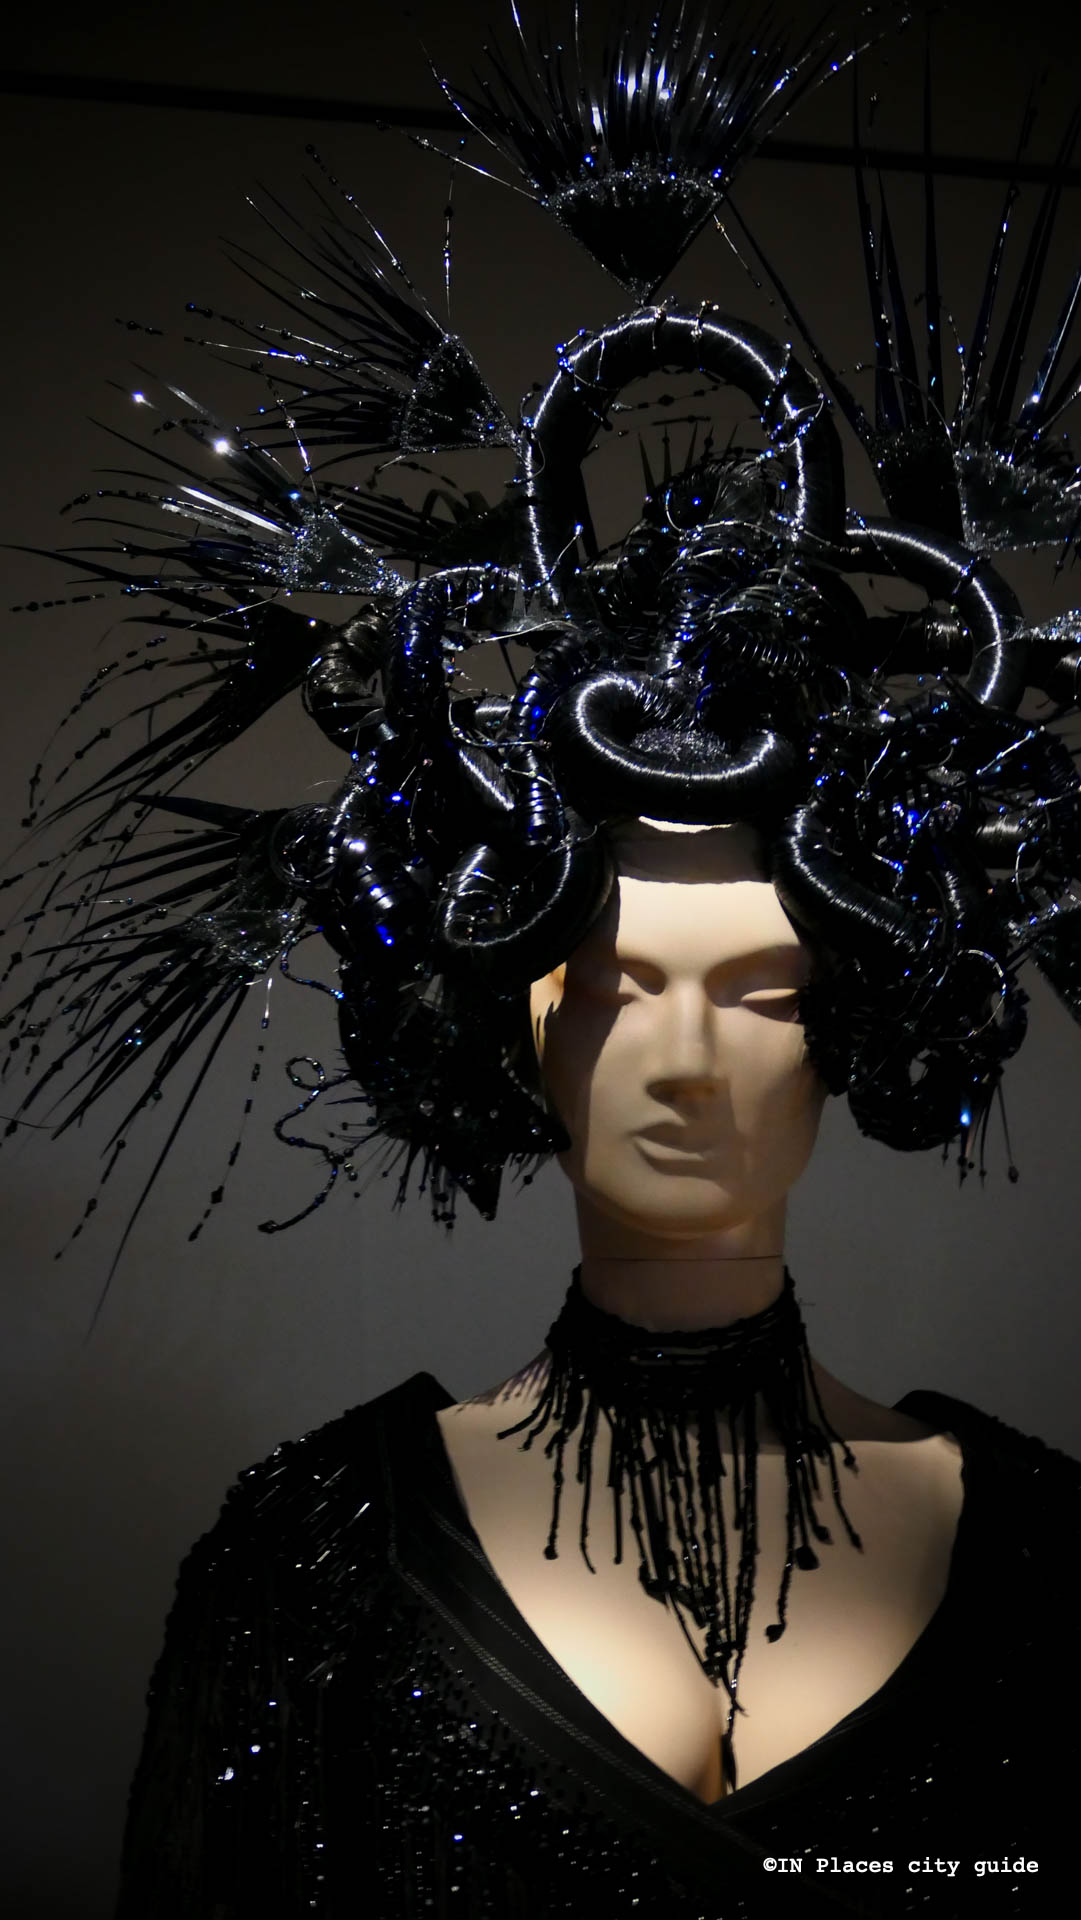 thierry mugler couturissime